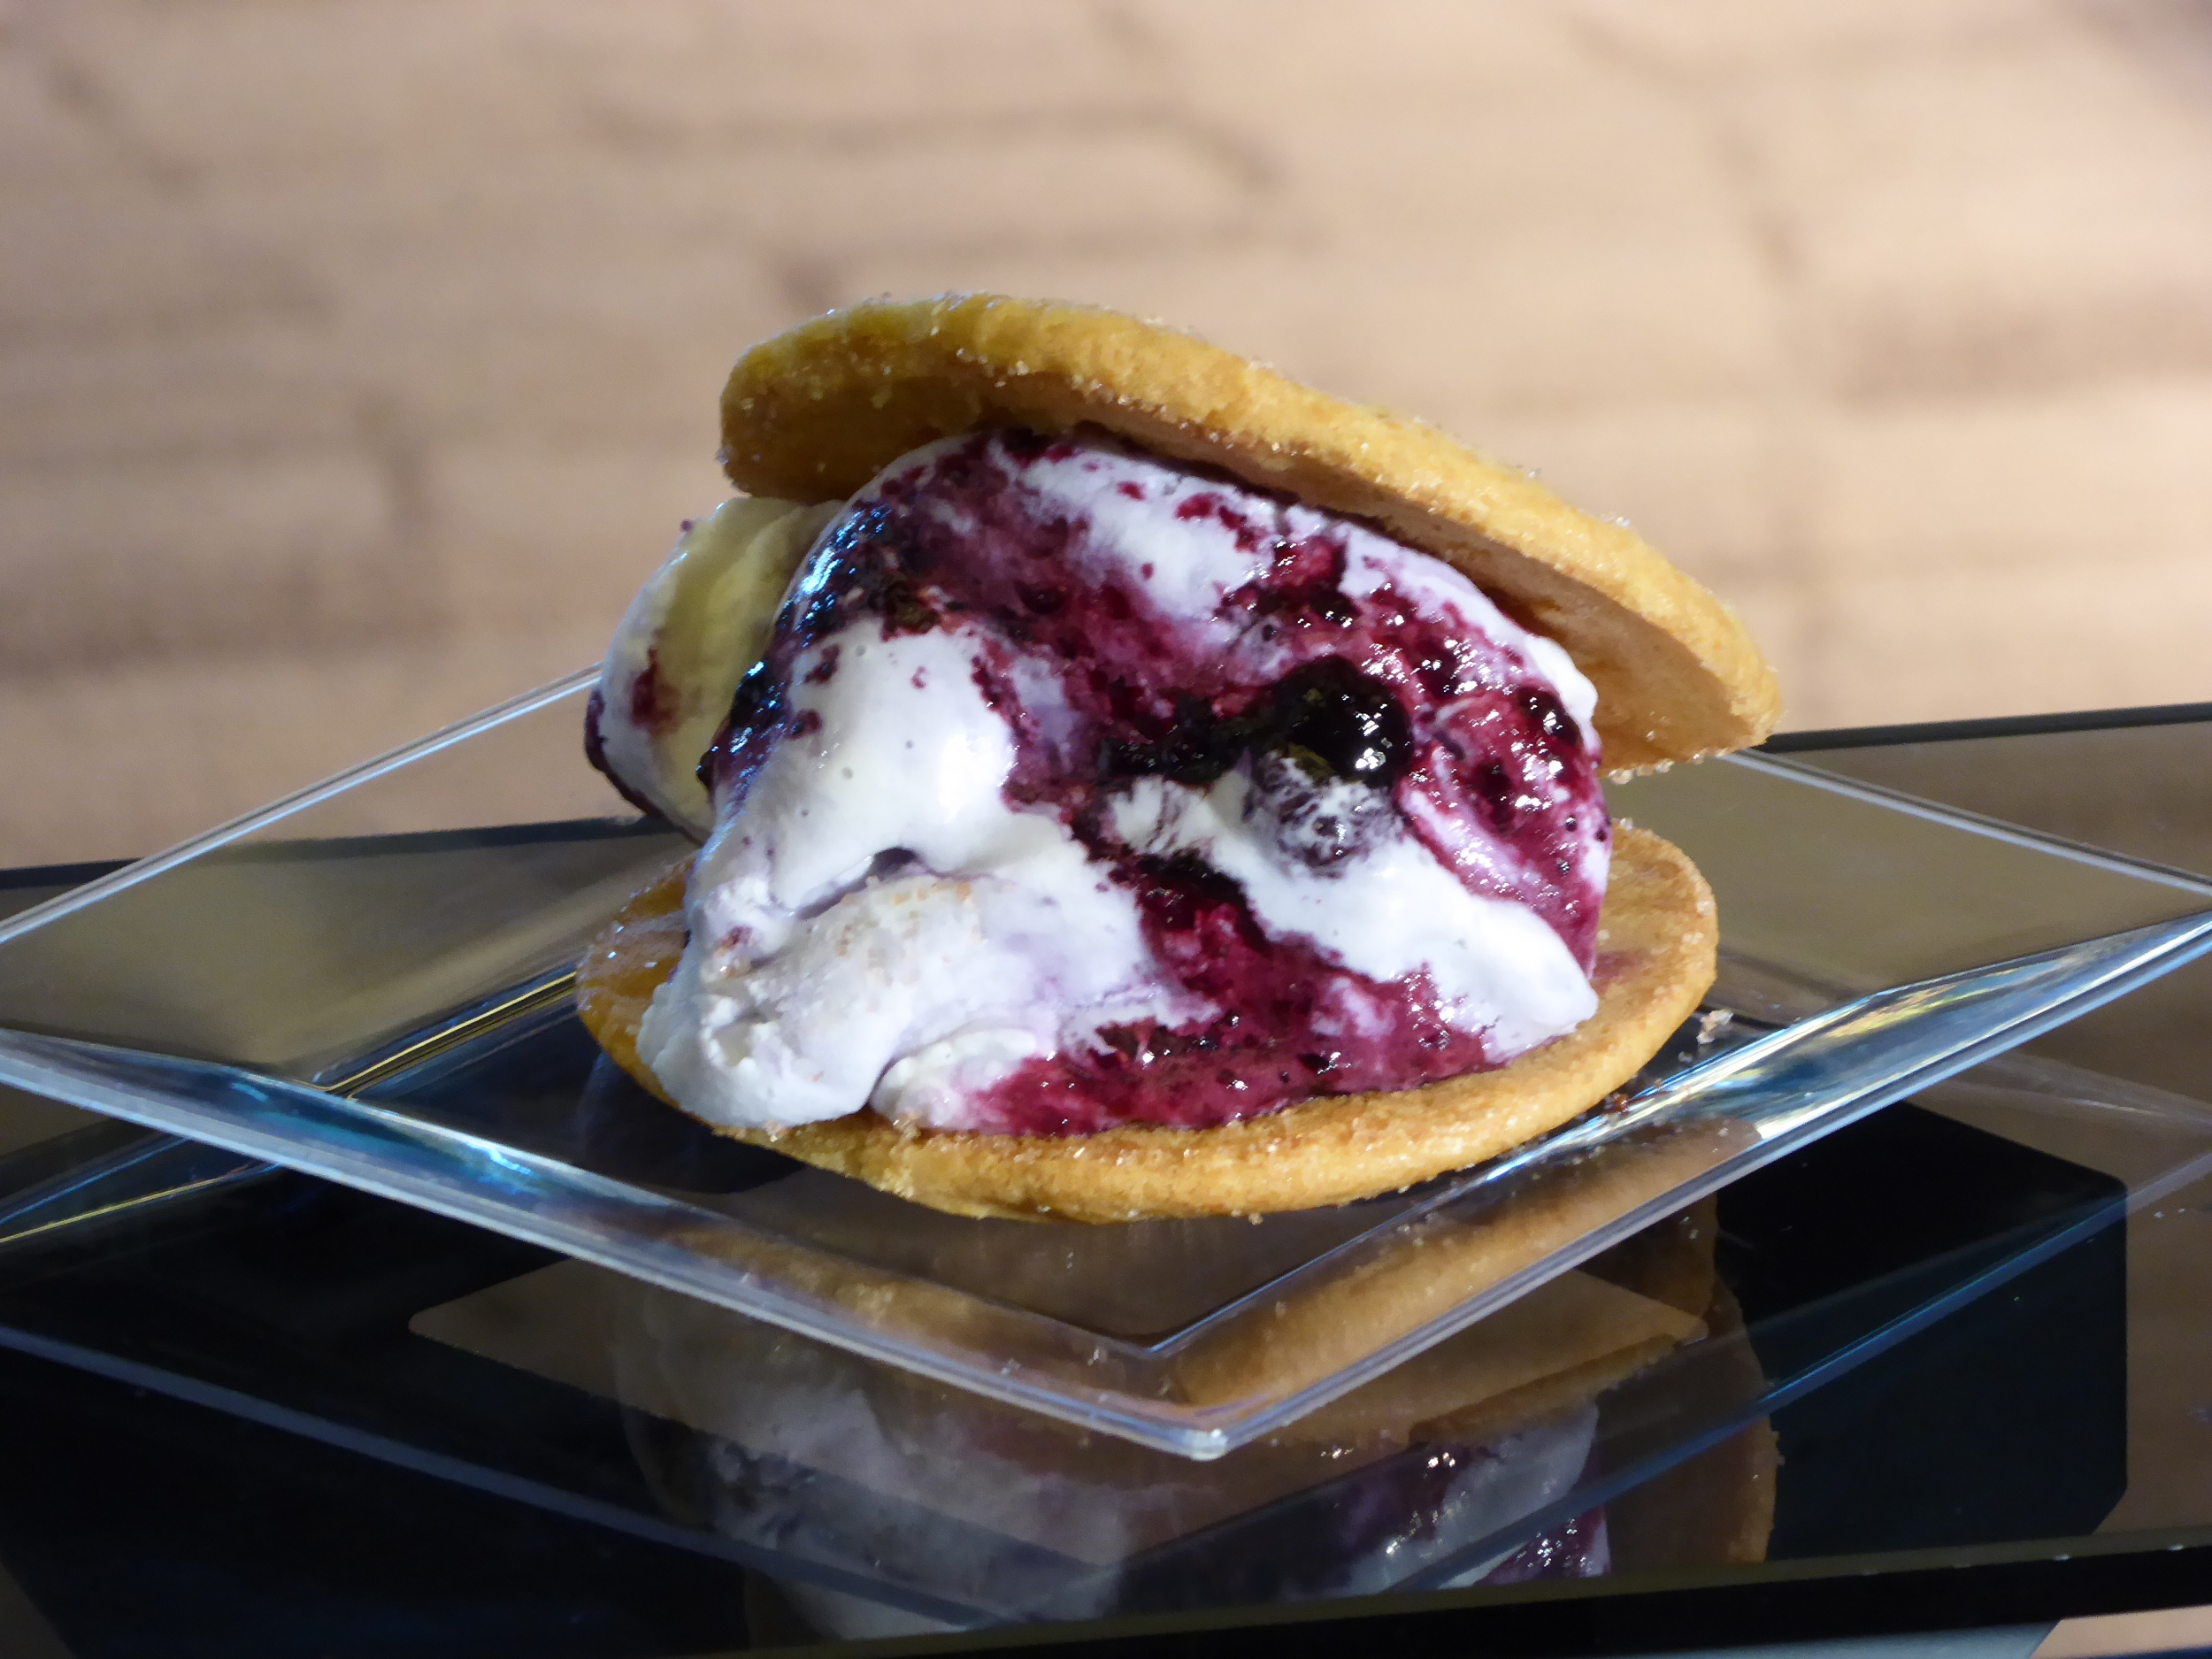 Gelato cookie sandwiches - blueberry cream gelato stuffed between two snickerdoodle cookies which can be found on the main concourse of the stadium